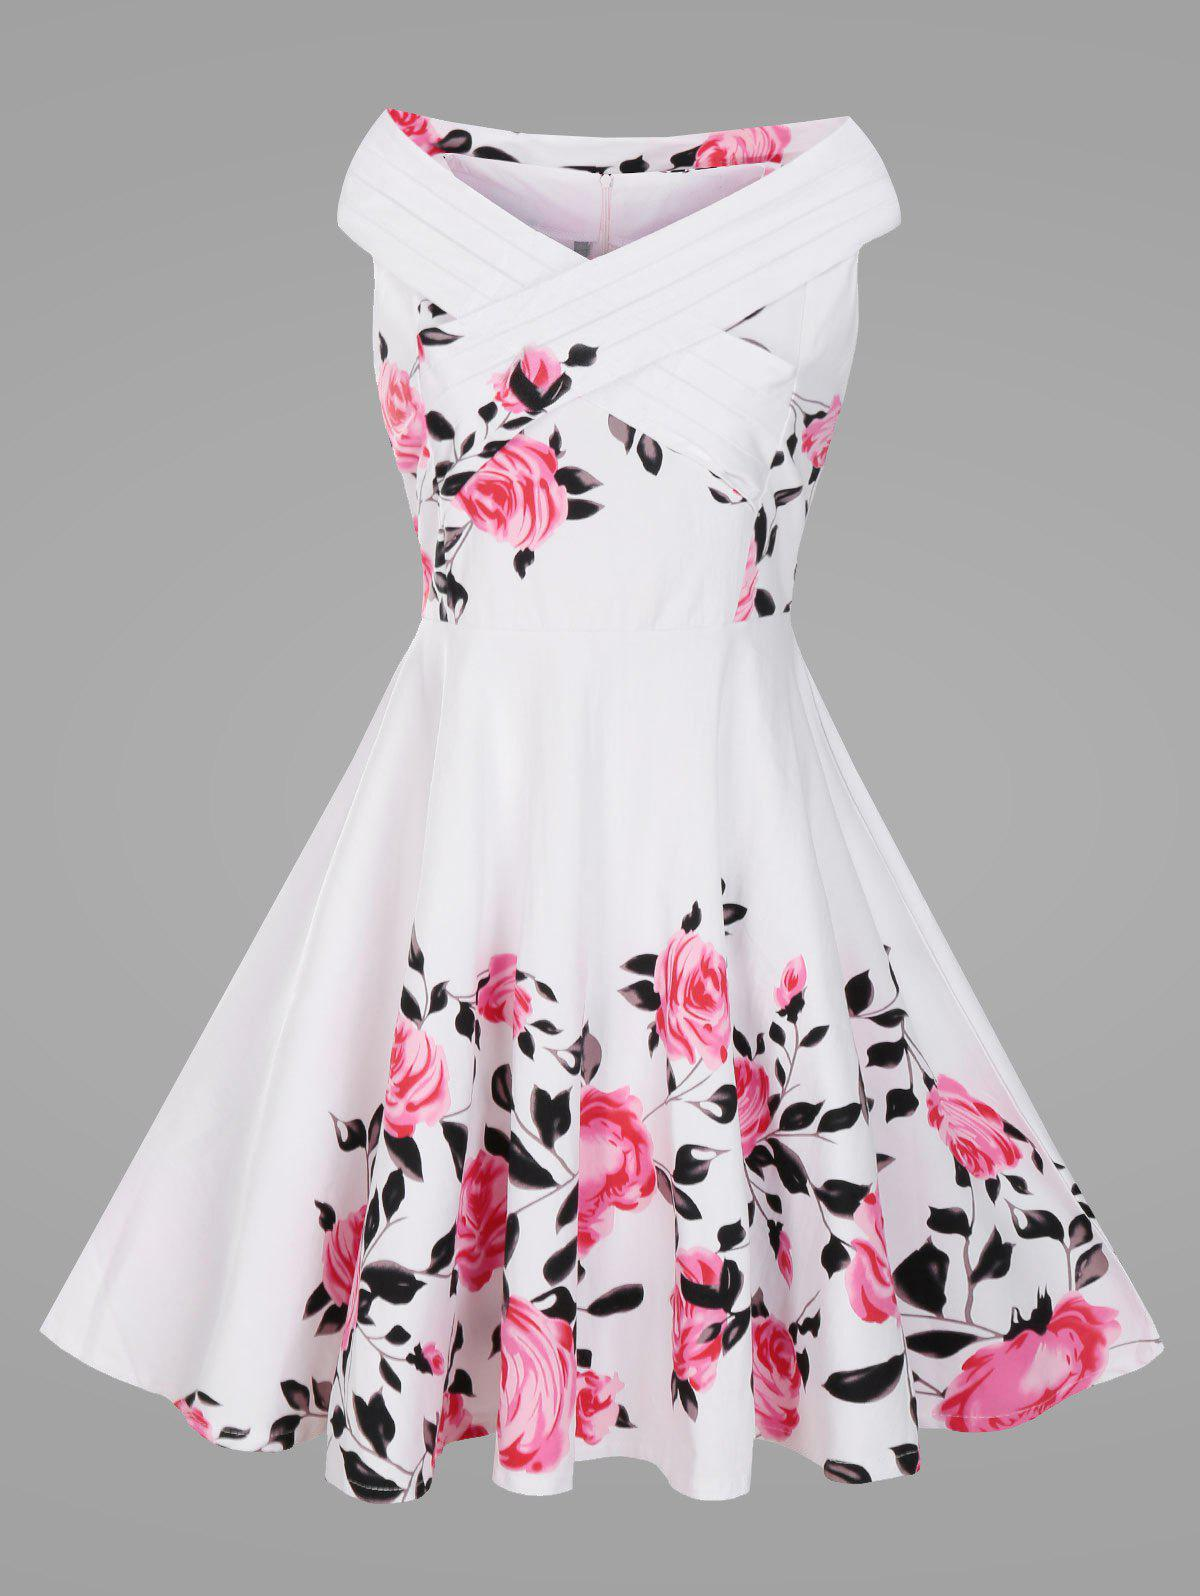 Flowered Retro Dress